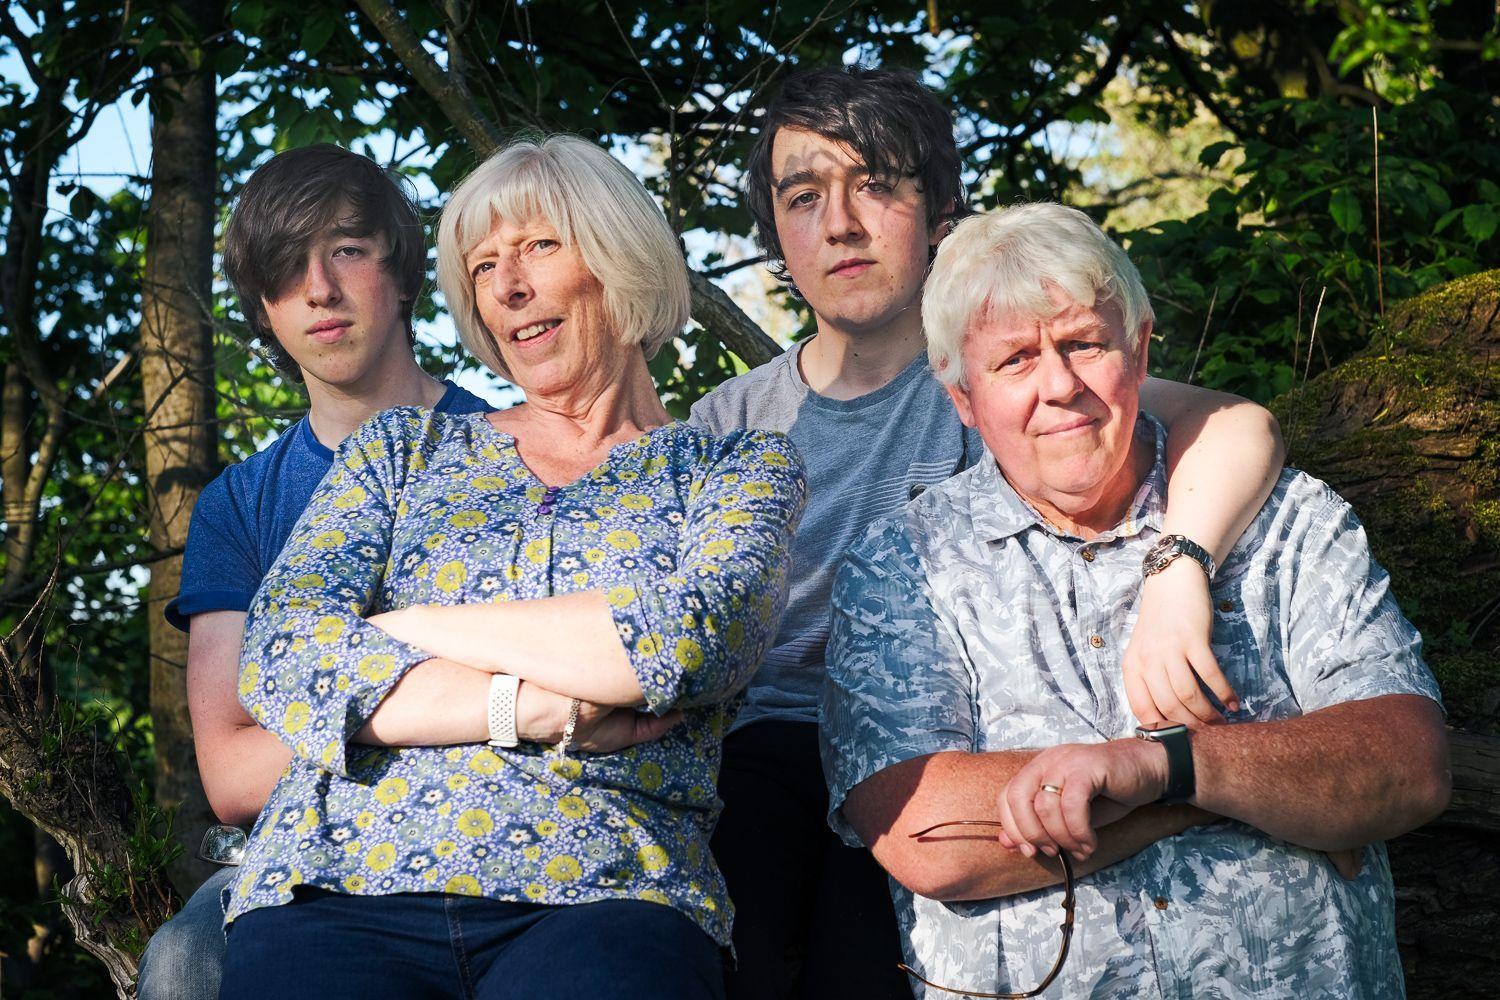 outdoor portrait of family group